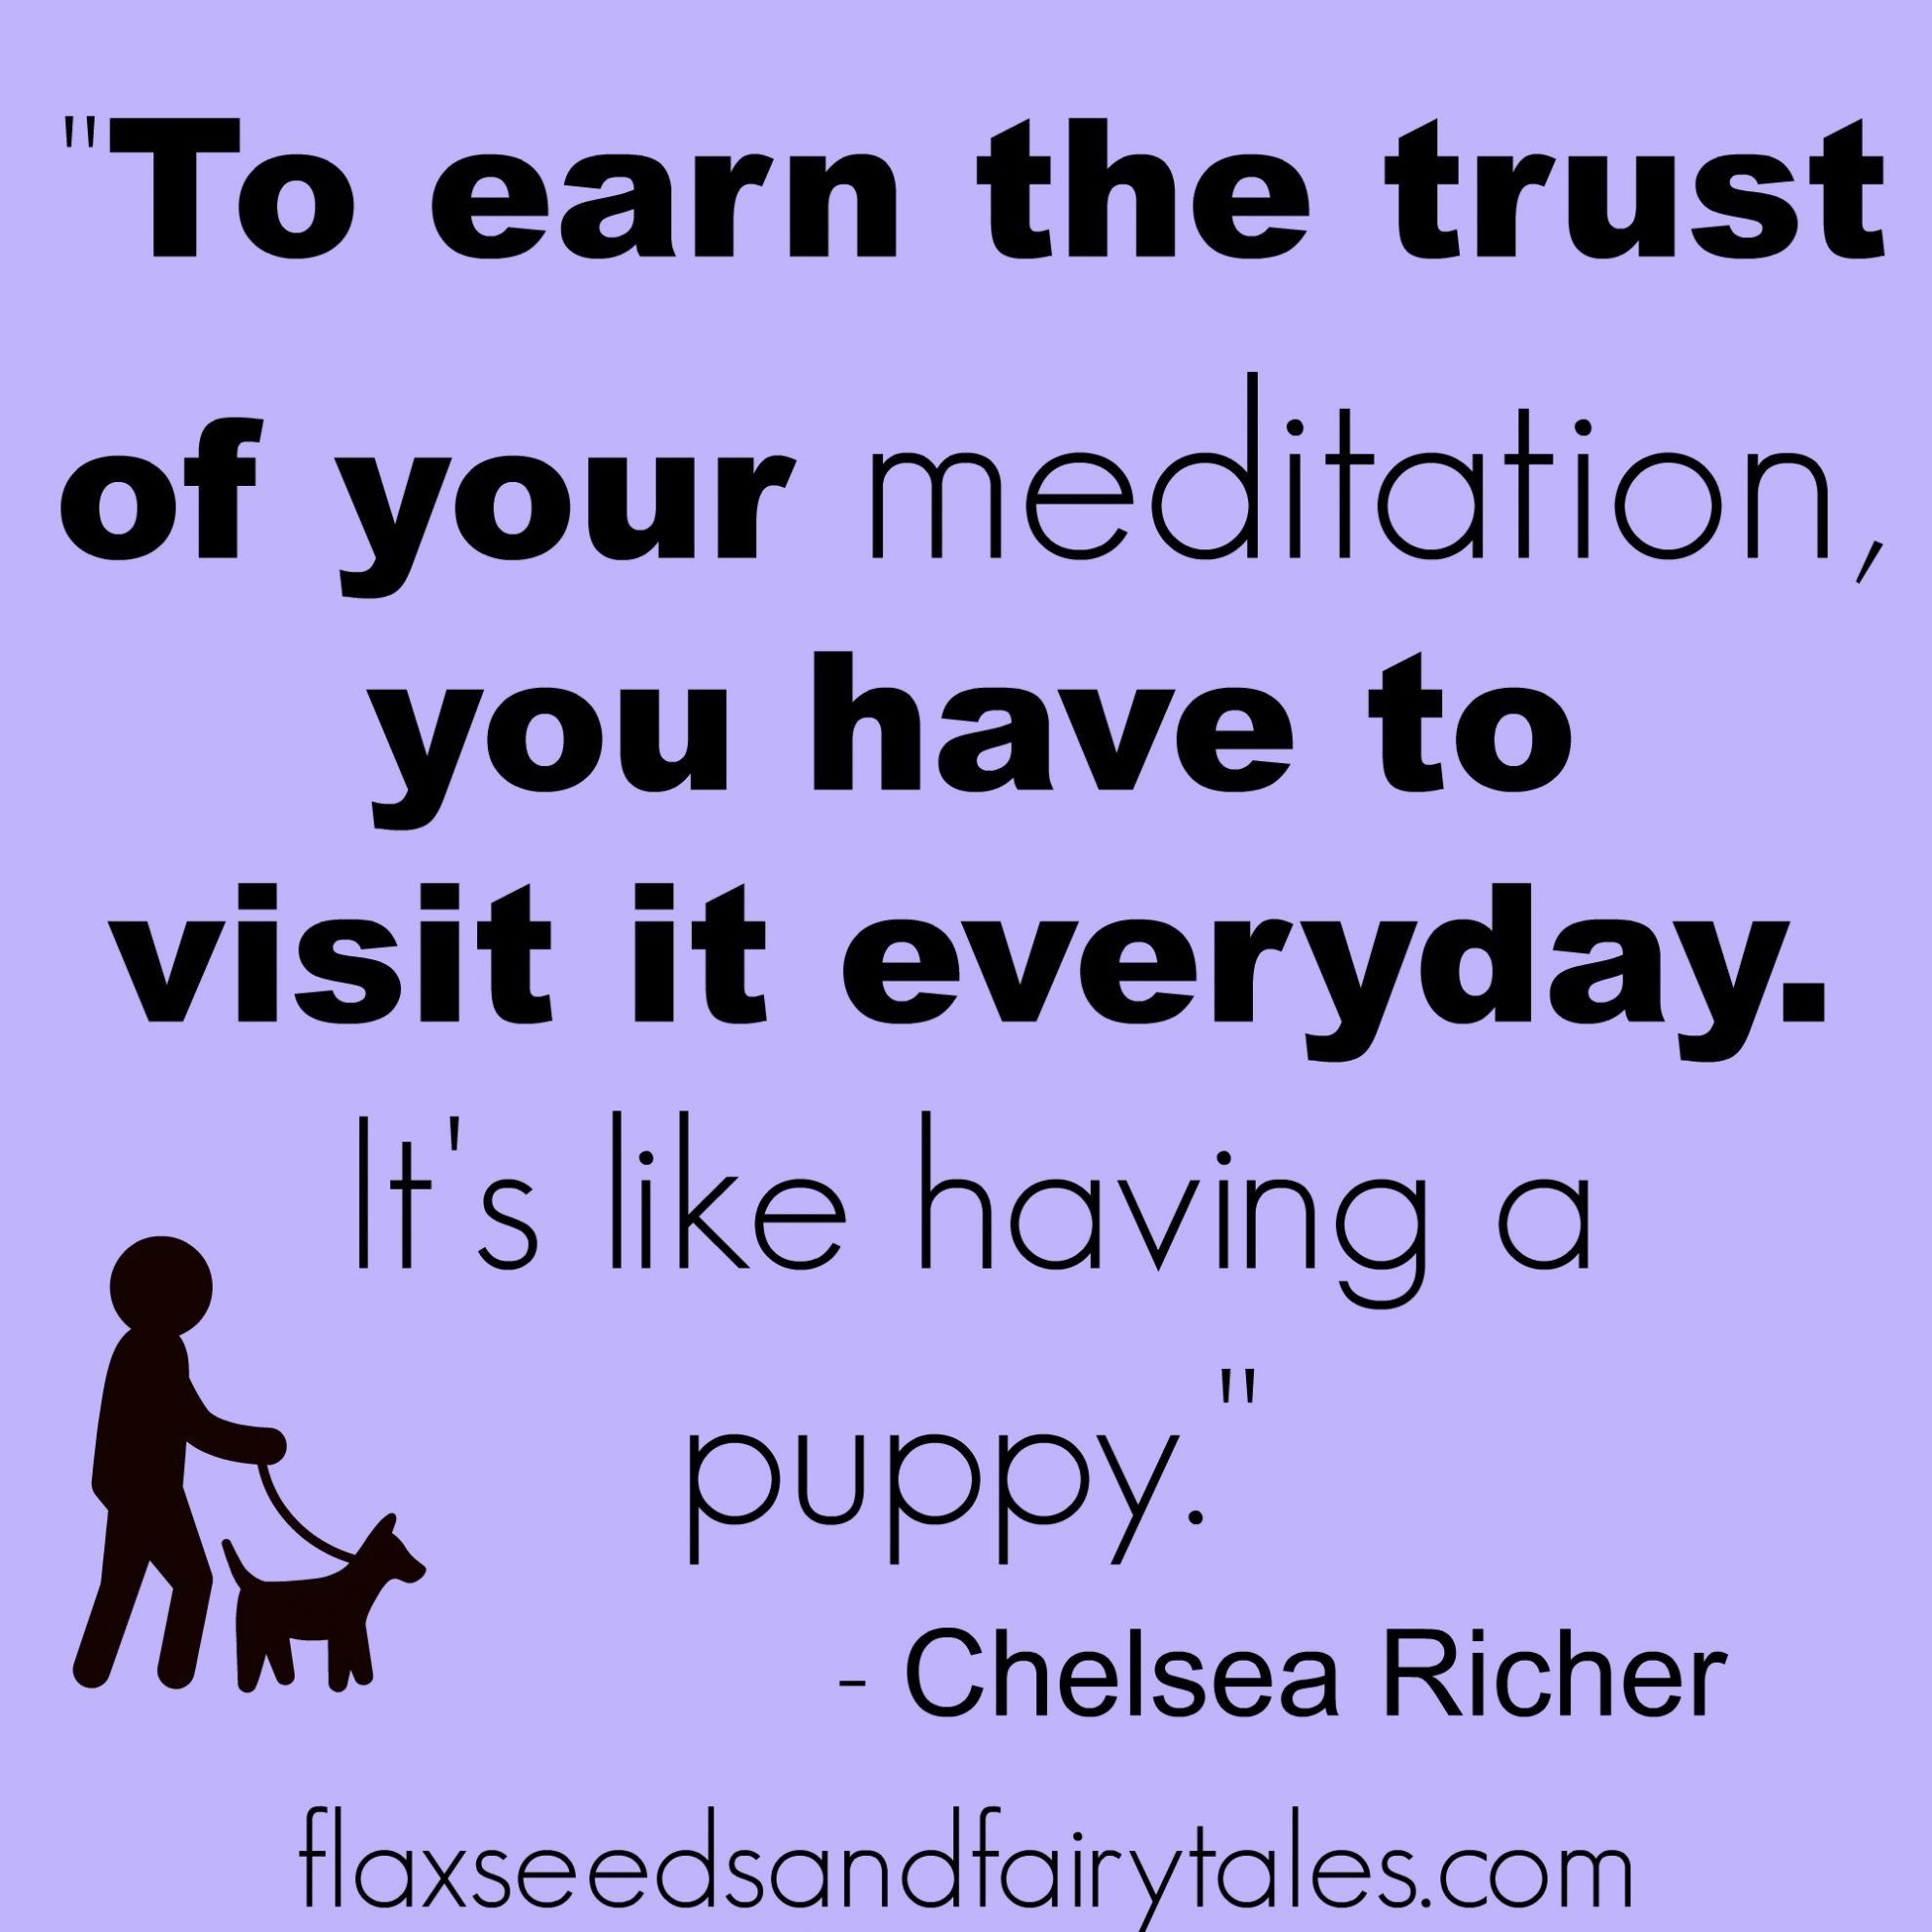 12 Funny Meditation Quotes To Teach You About Mindfulness In 2020 Meditation Quotes Mindfulness Quotes Inspiration Meditation For Beginners